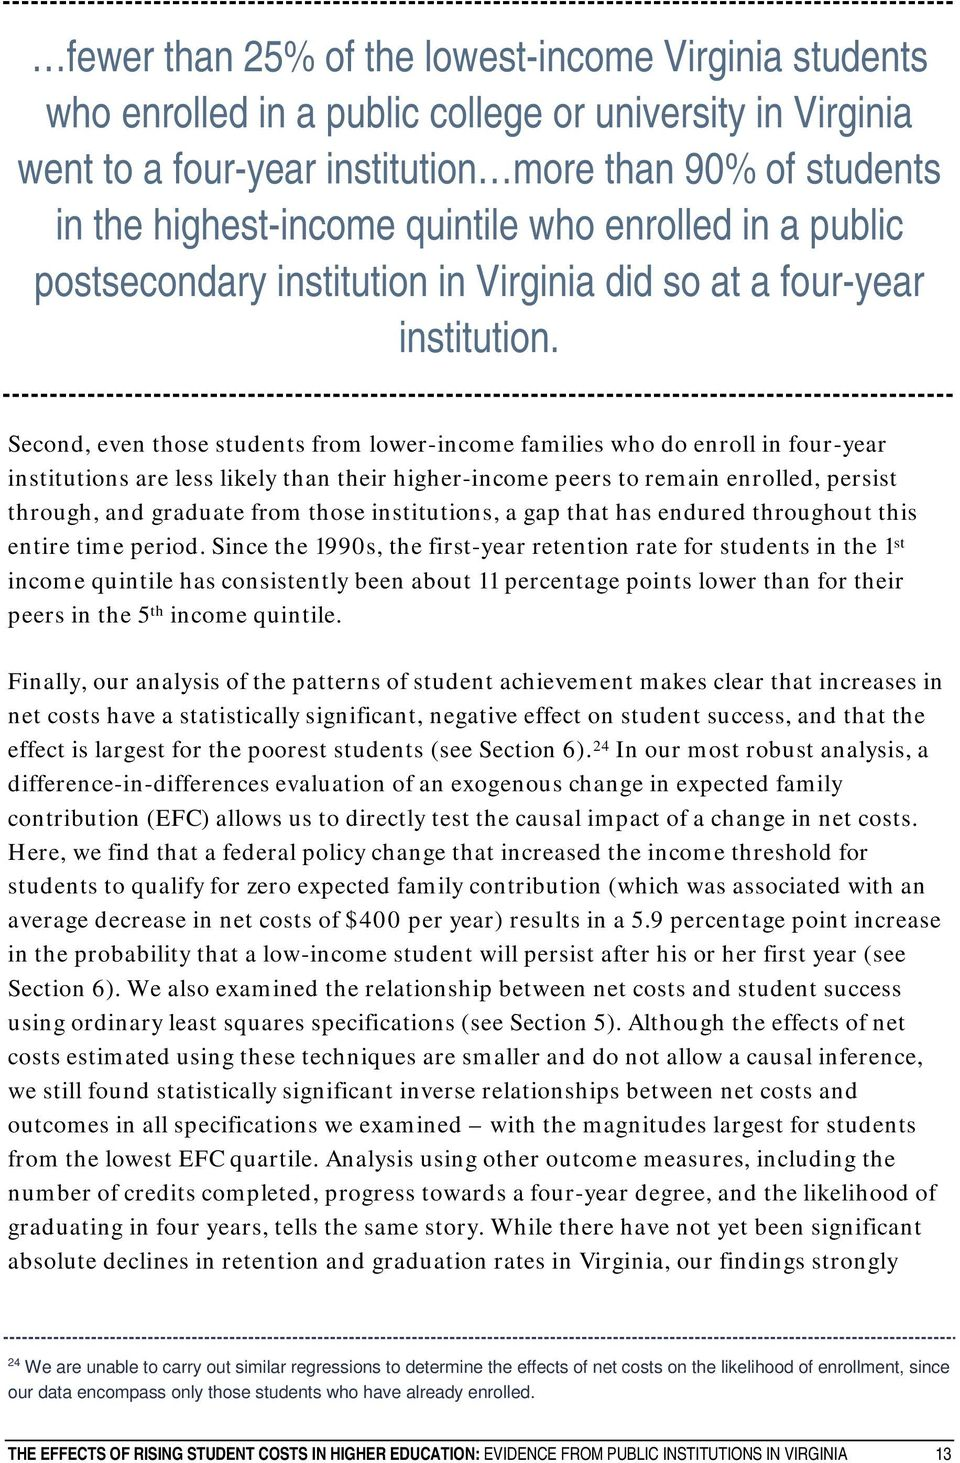 Second, even those students from lower-income families who do enroll in four-year institutions are less likely than their higher-income peers to remain enrolled, persist through, and graduate from